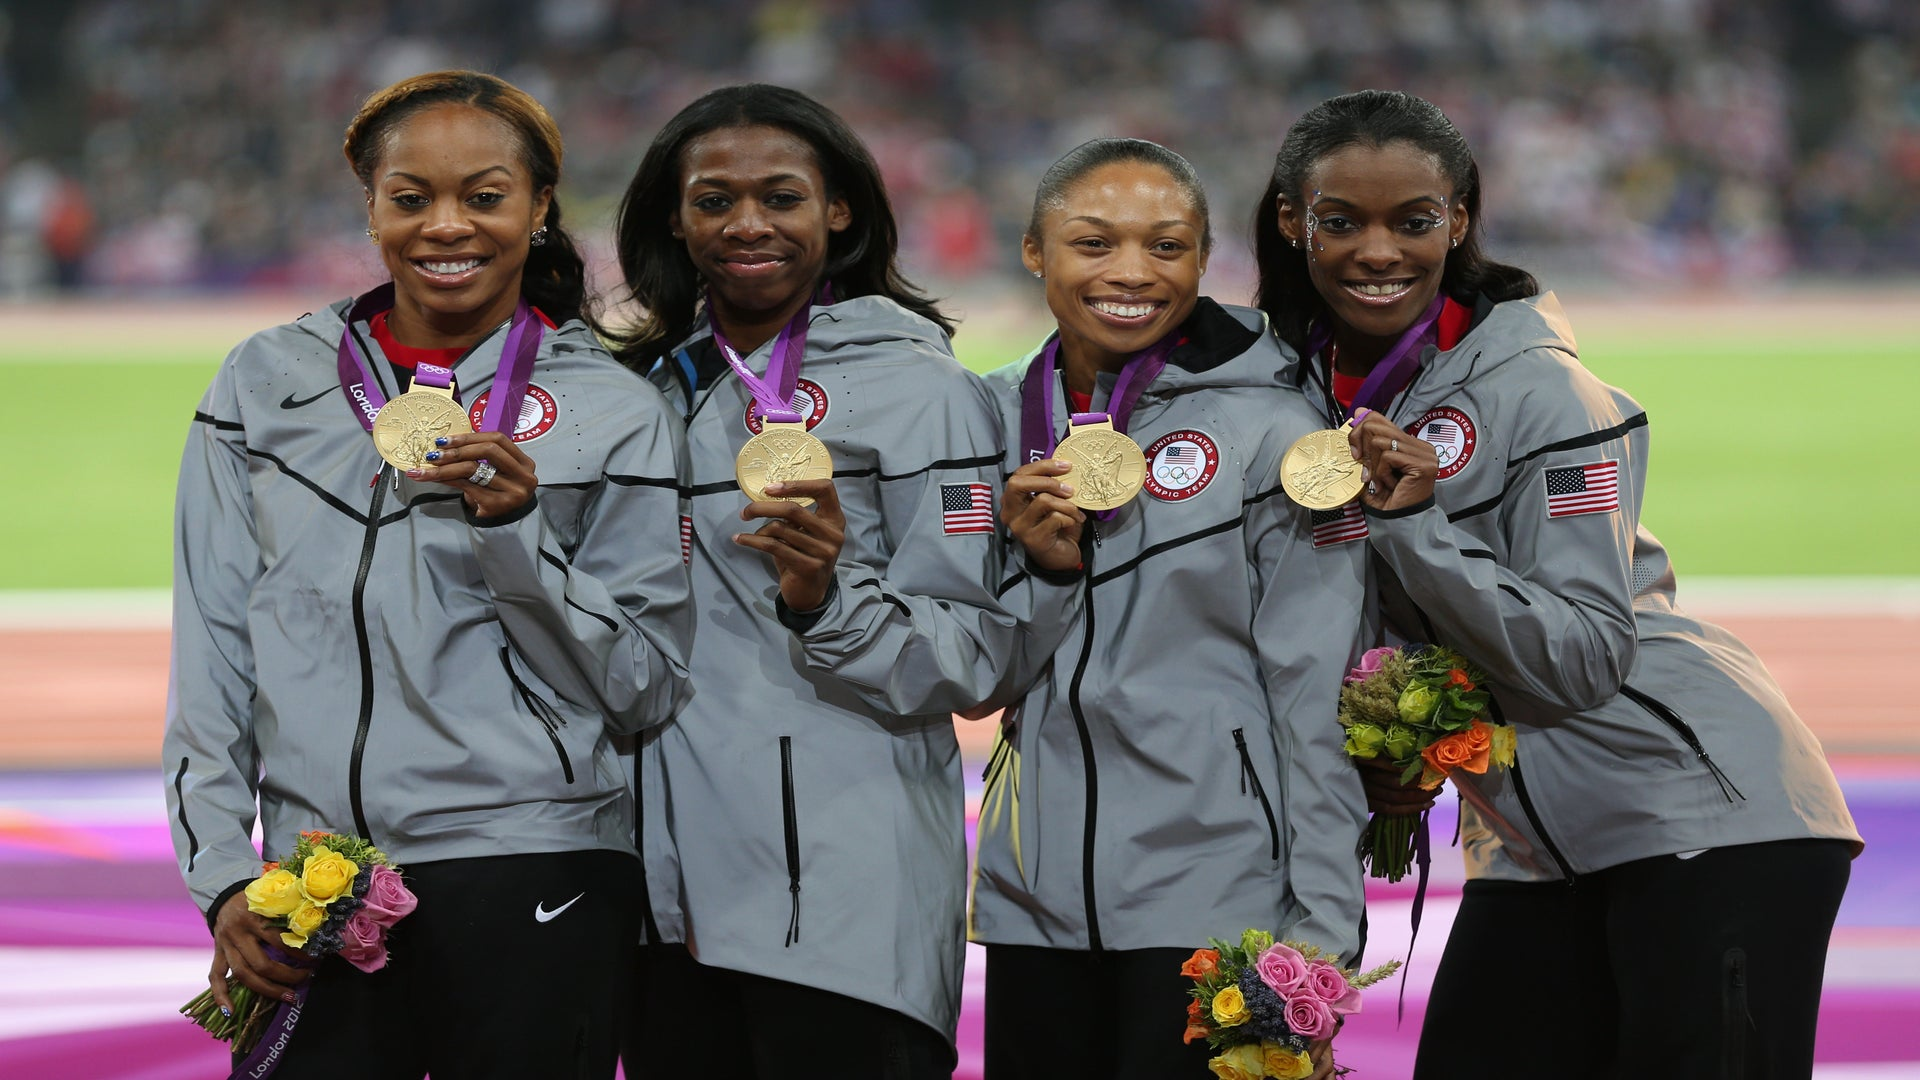 U.S. Women's 4x400m Relay Team Earns Gold, Men Take Silver in 4x100m Relay